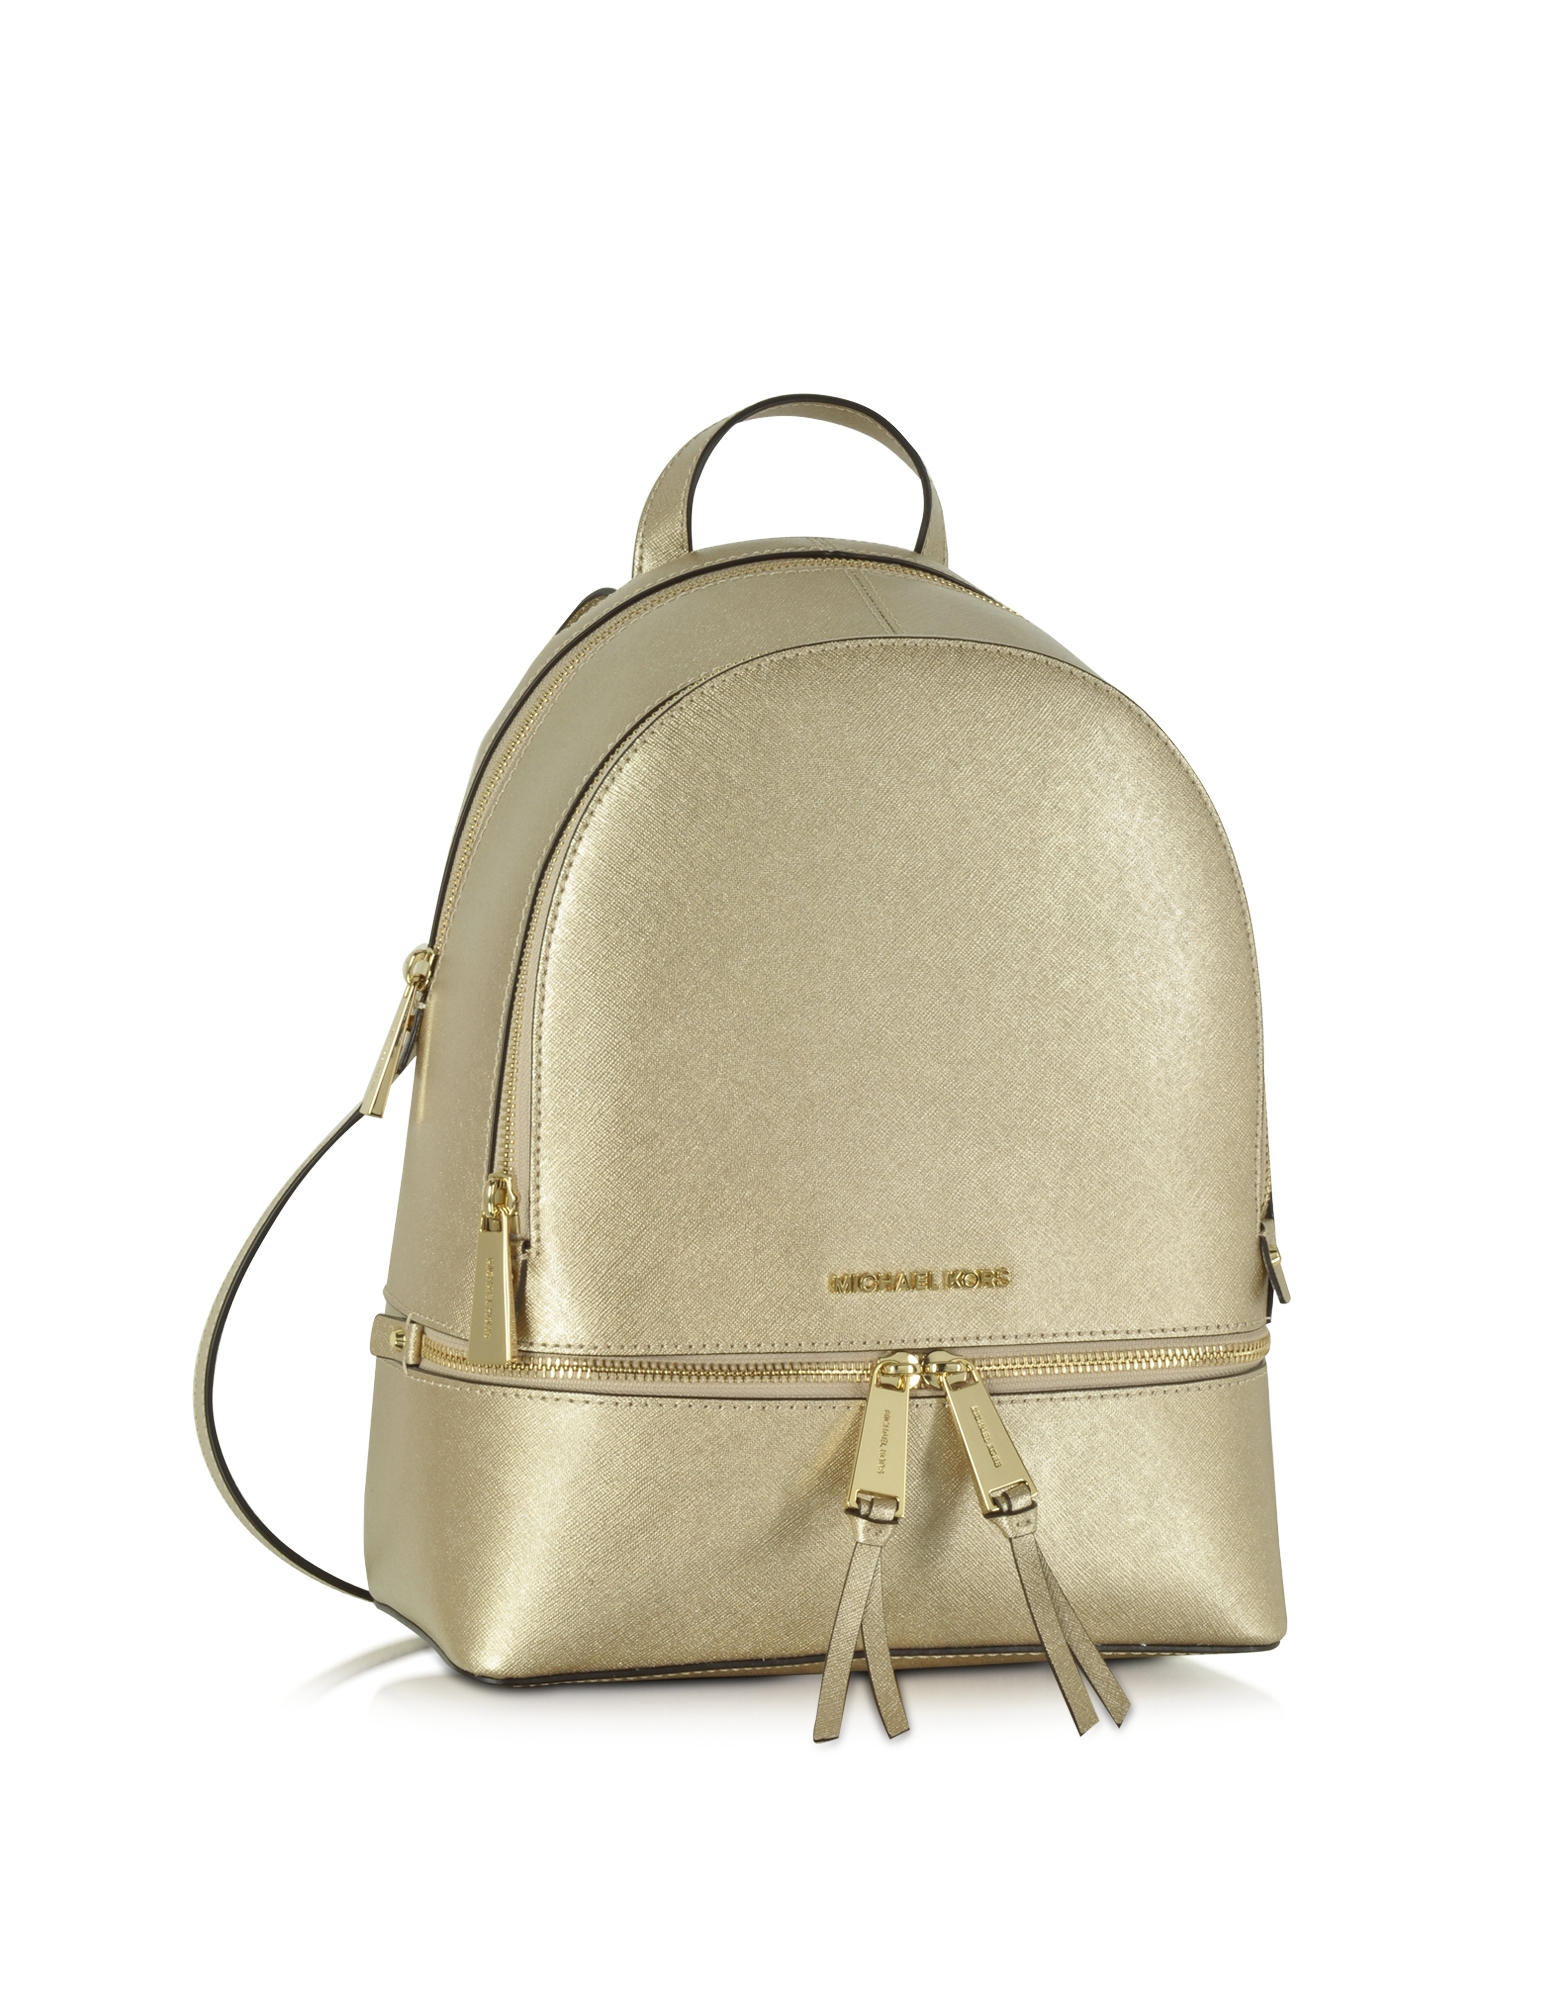 8055ce6d3e8085 ... best price lyst michael kors rhea zip pale gold medium backpack in me  0e374 646a6